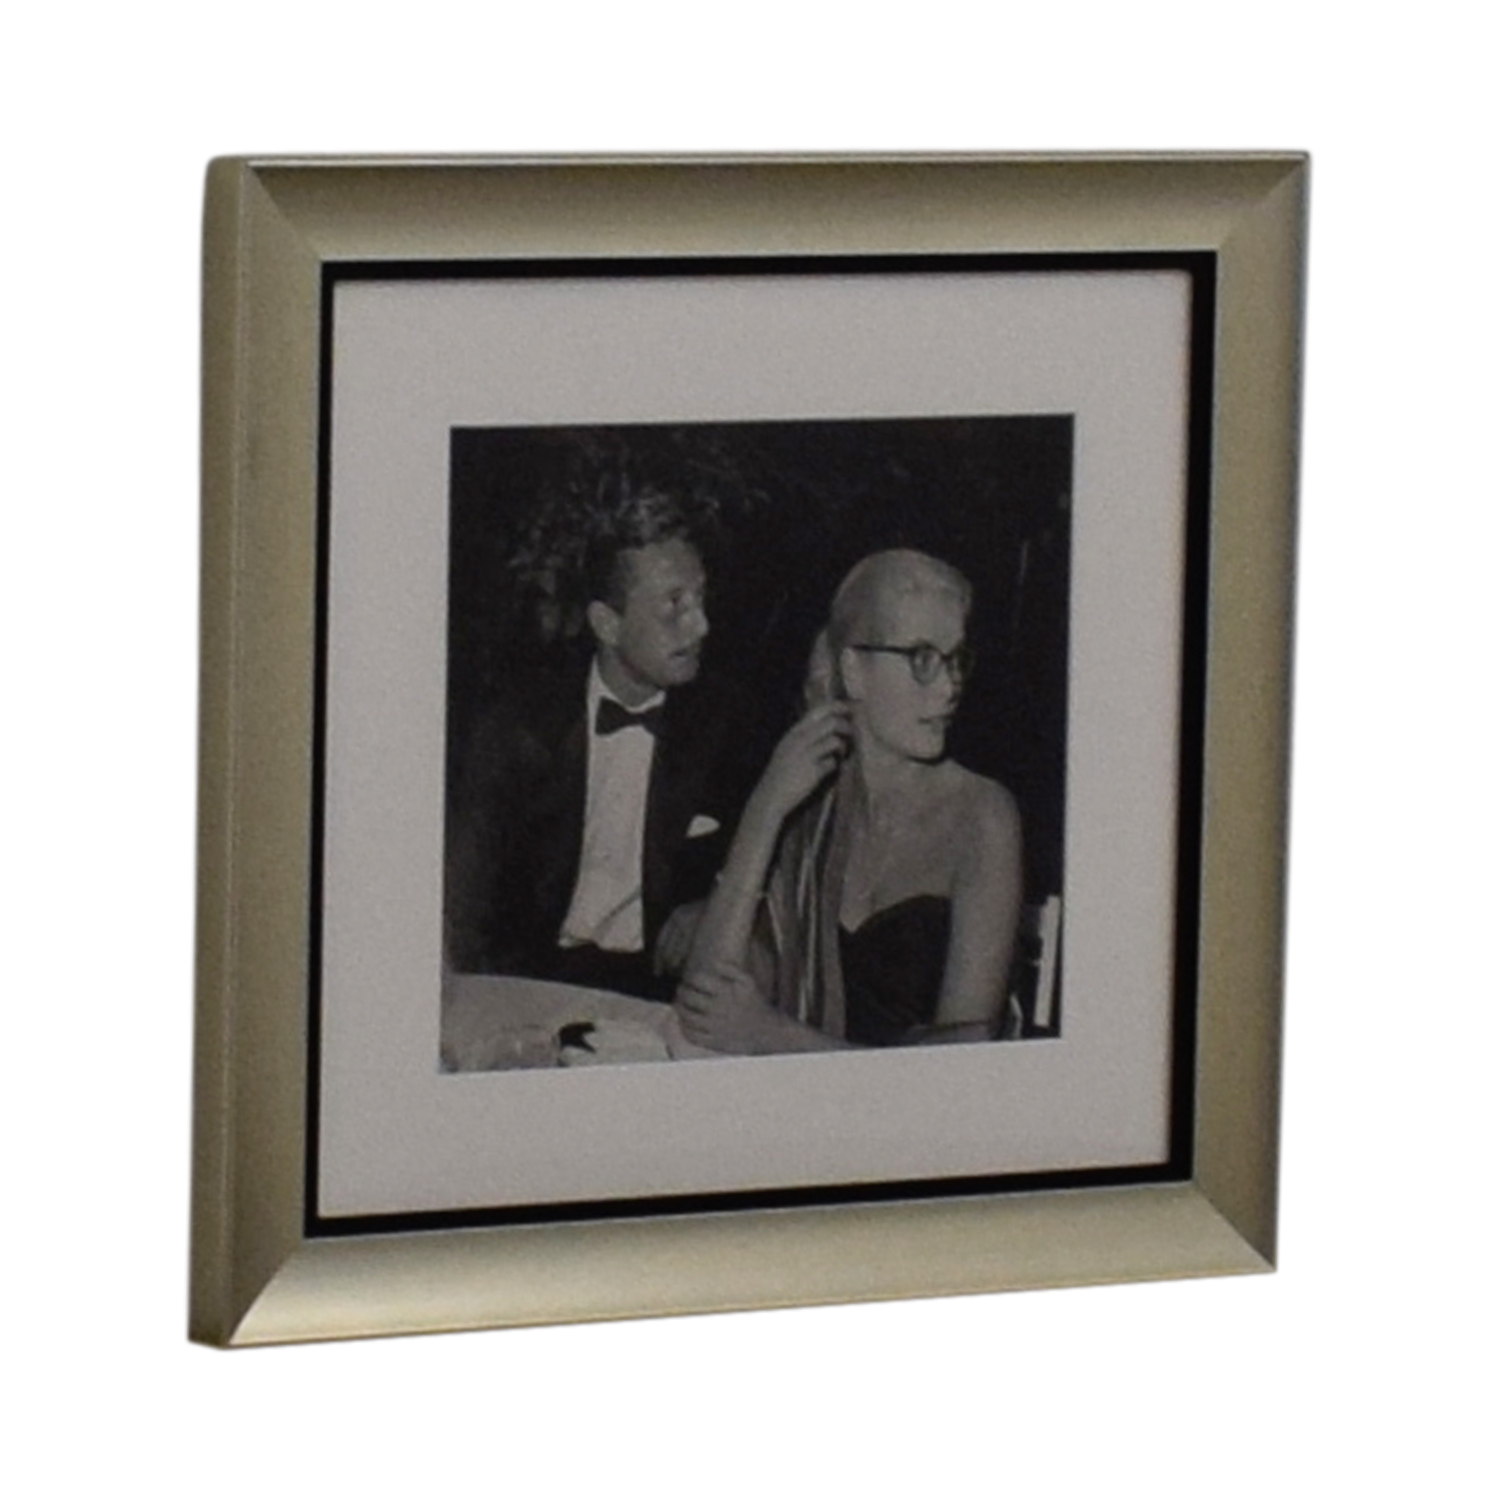 Ralph Lauren Ralph Lauren Grace Kelly and Oleg Cassini Framed Photograph dimensions